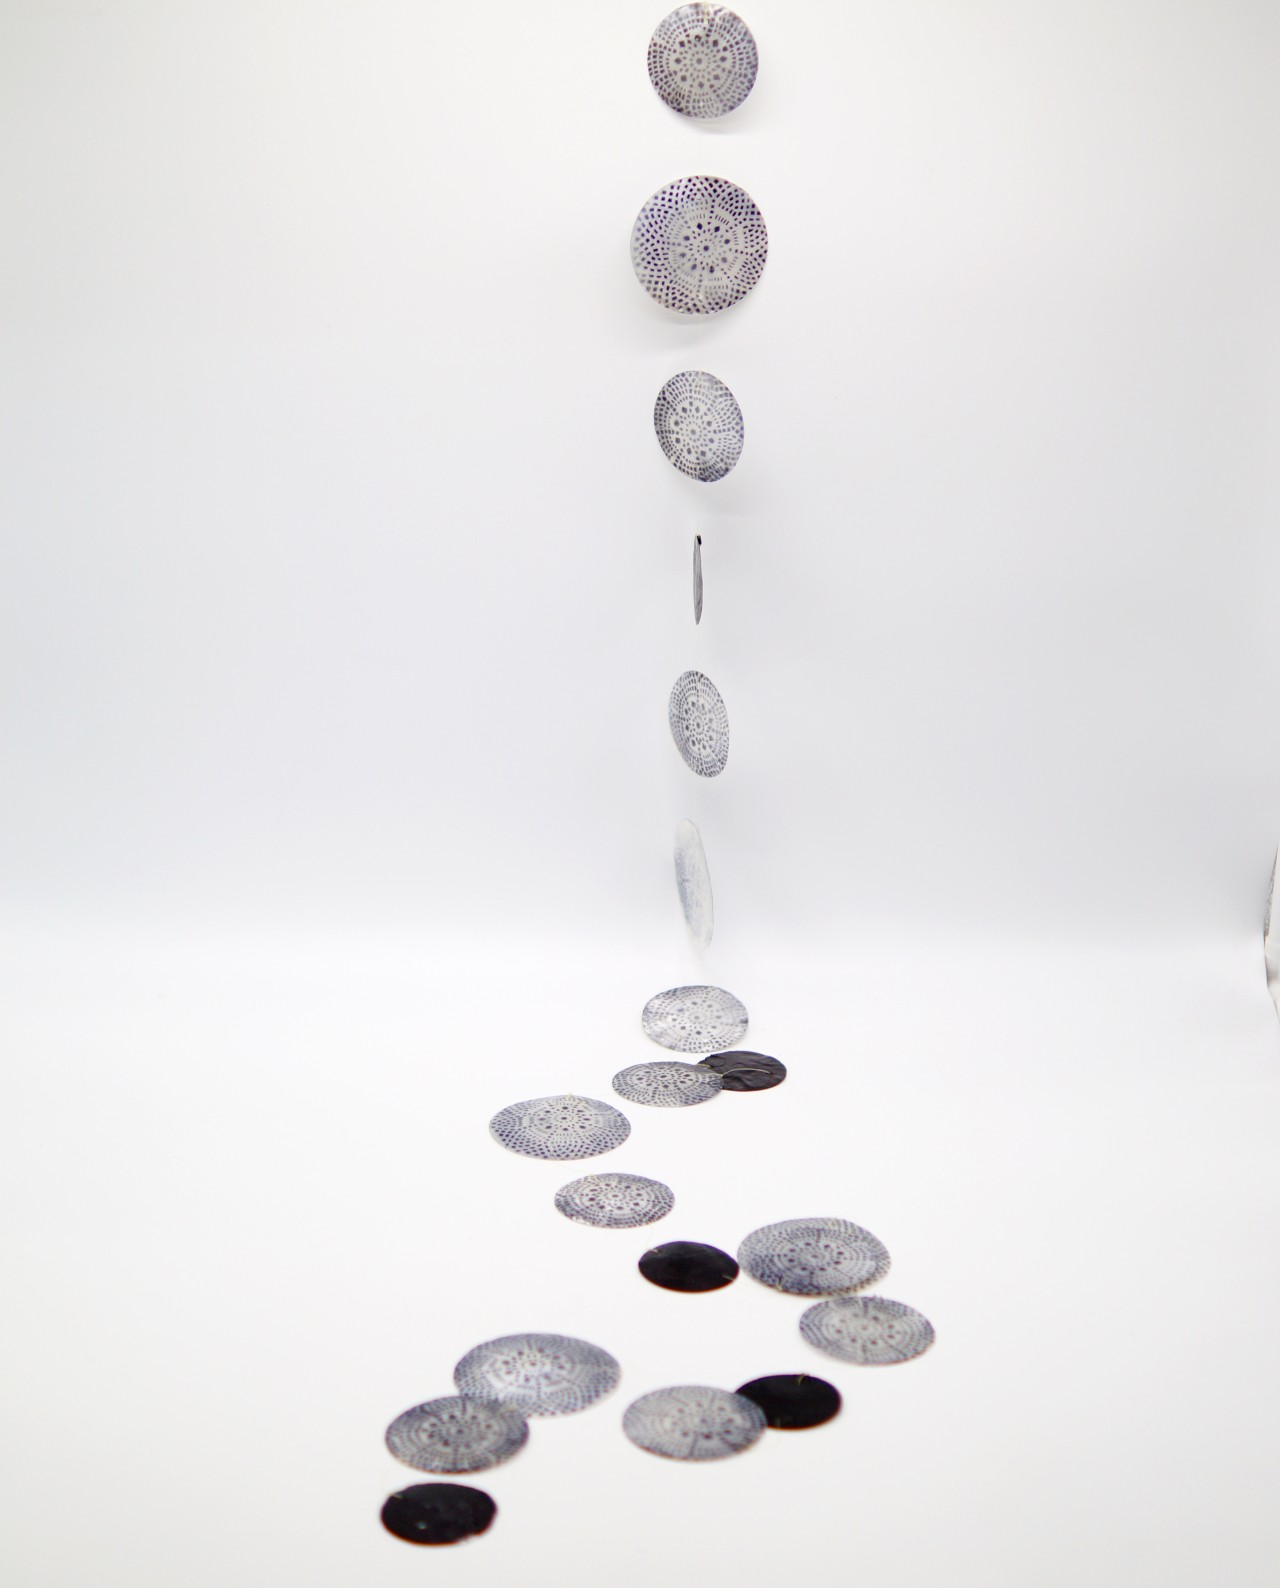 Garland of mother of pearl painted into a mix of patterns with black dots